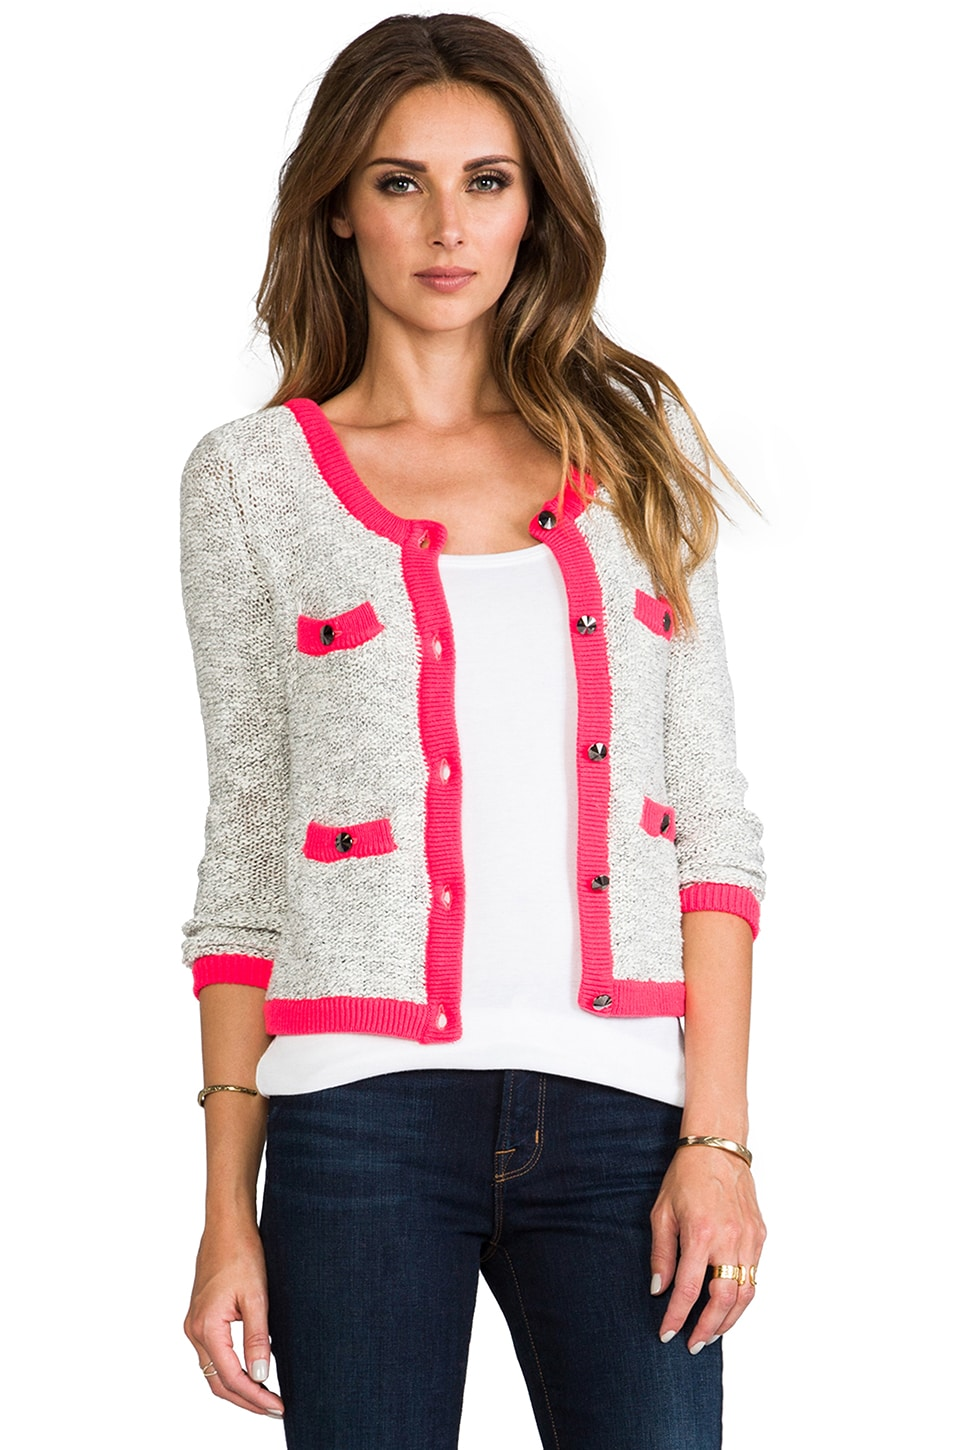 MILLY Contrast Trom Cardigan in Marble